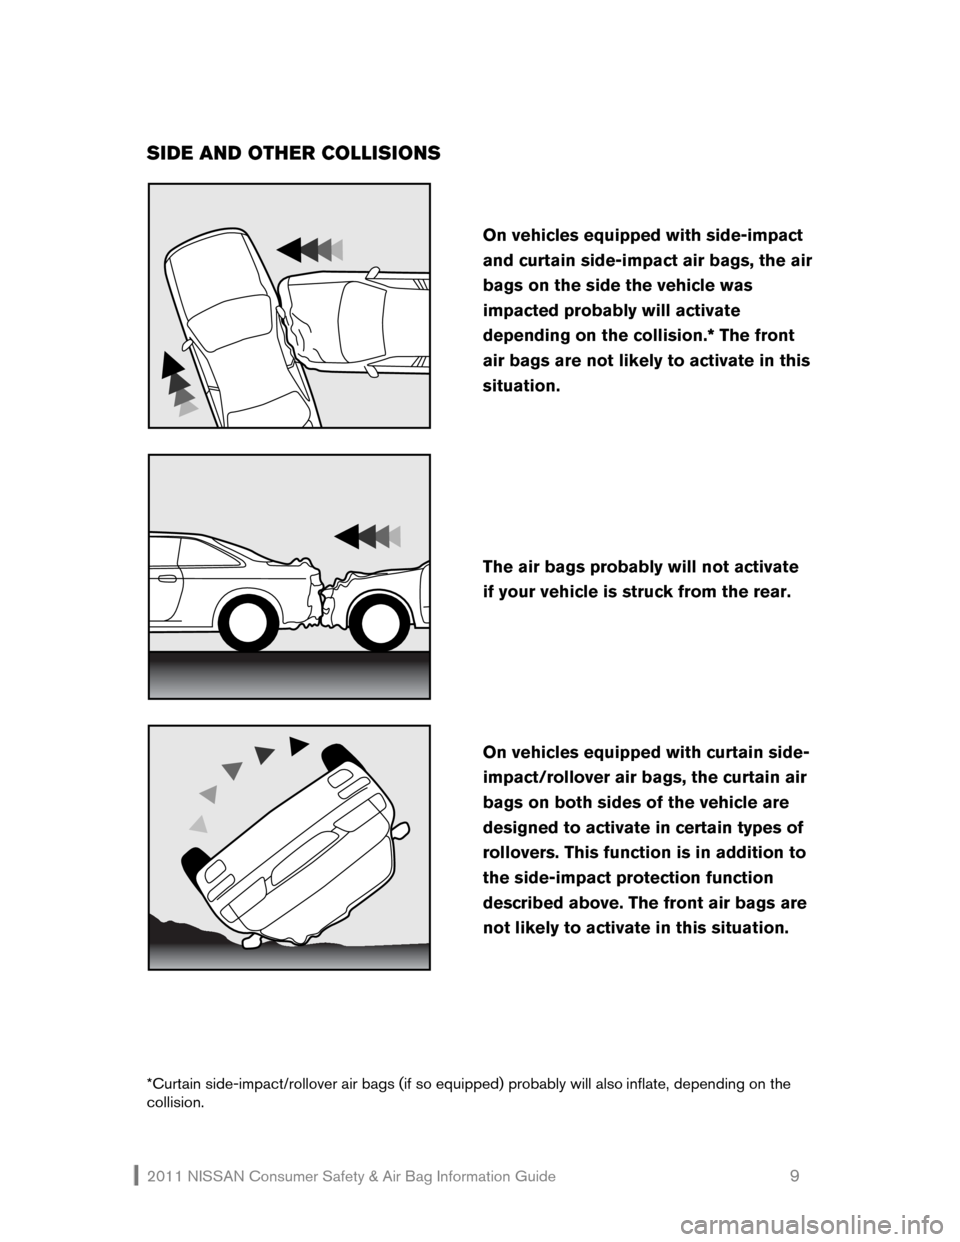 NISSAN ROGUE 2011 1.G Consumer Safety Air Bag Information Guide, Page 10